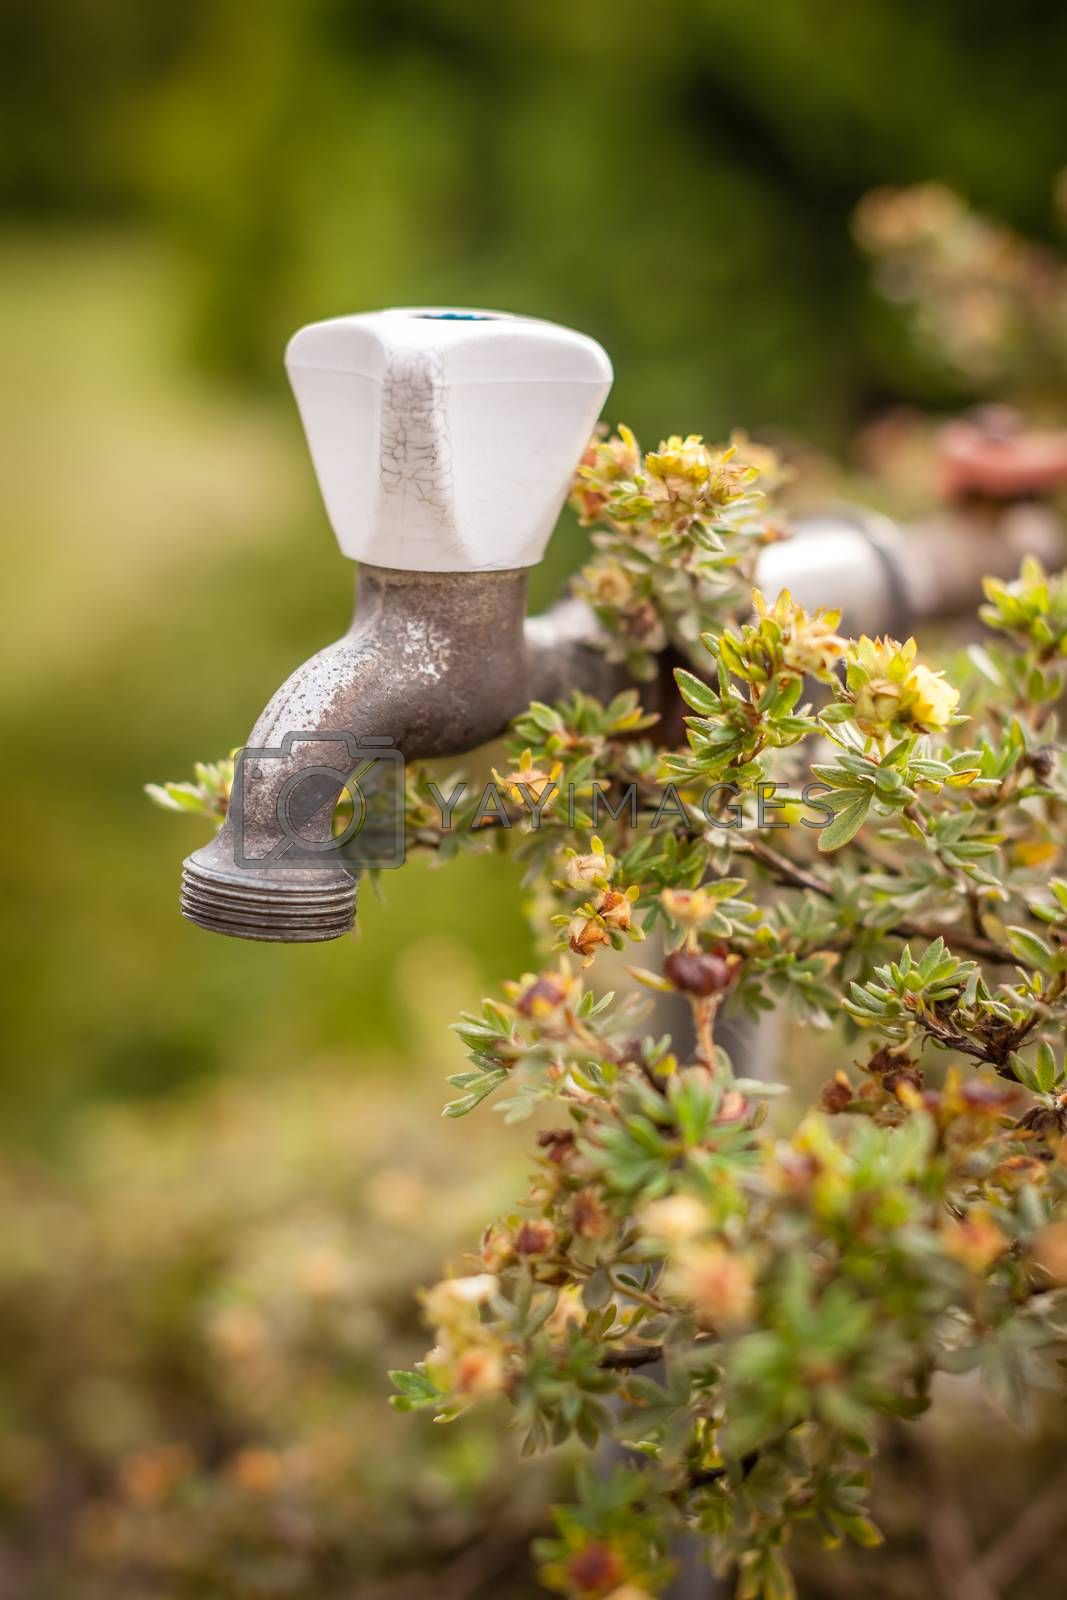 Close up picture of a water tap in the garden